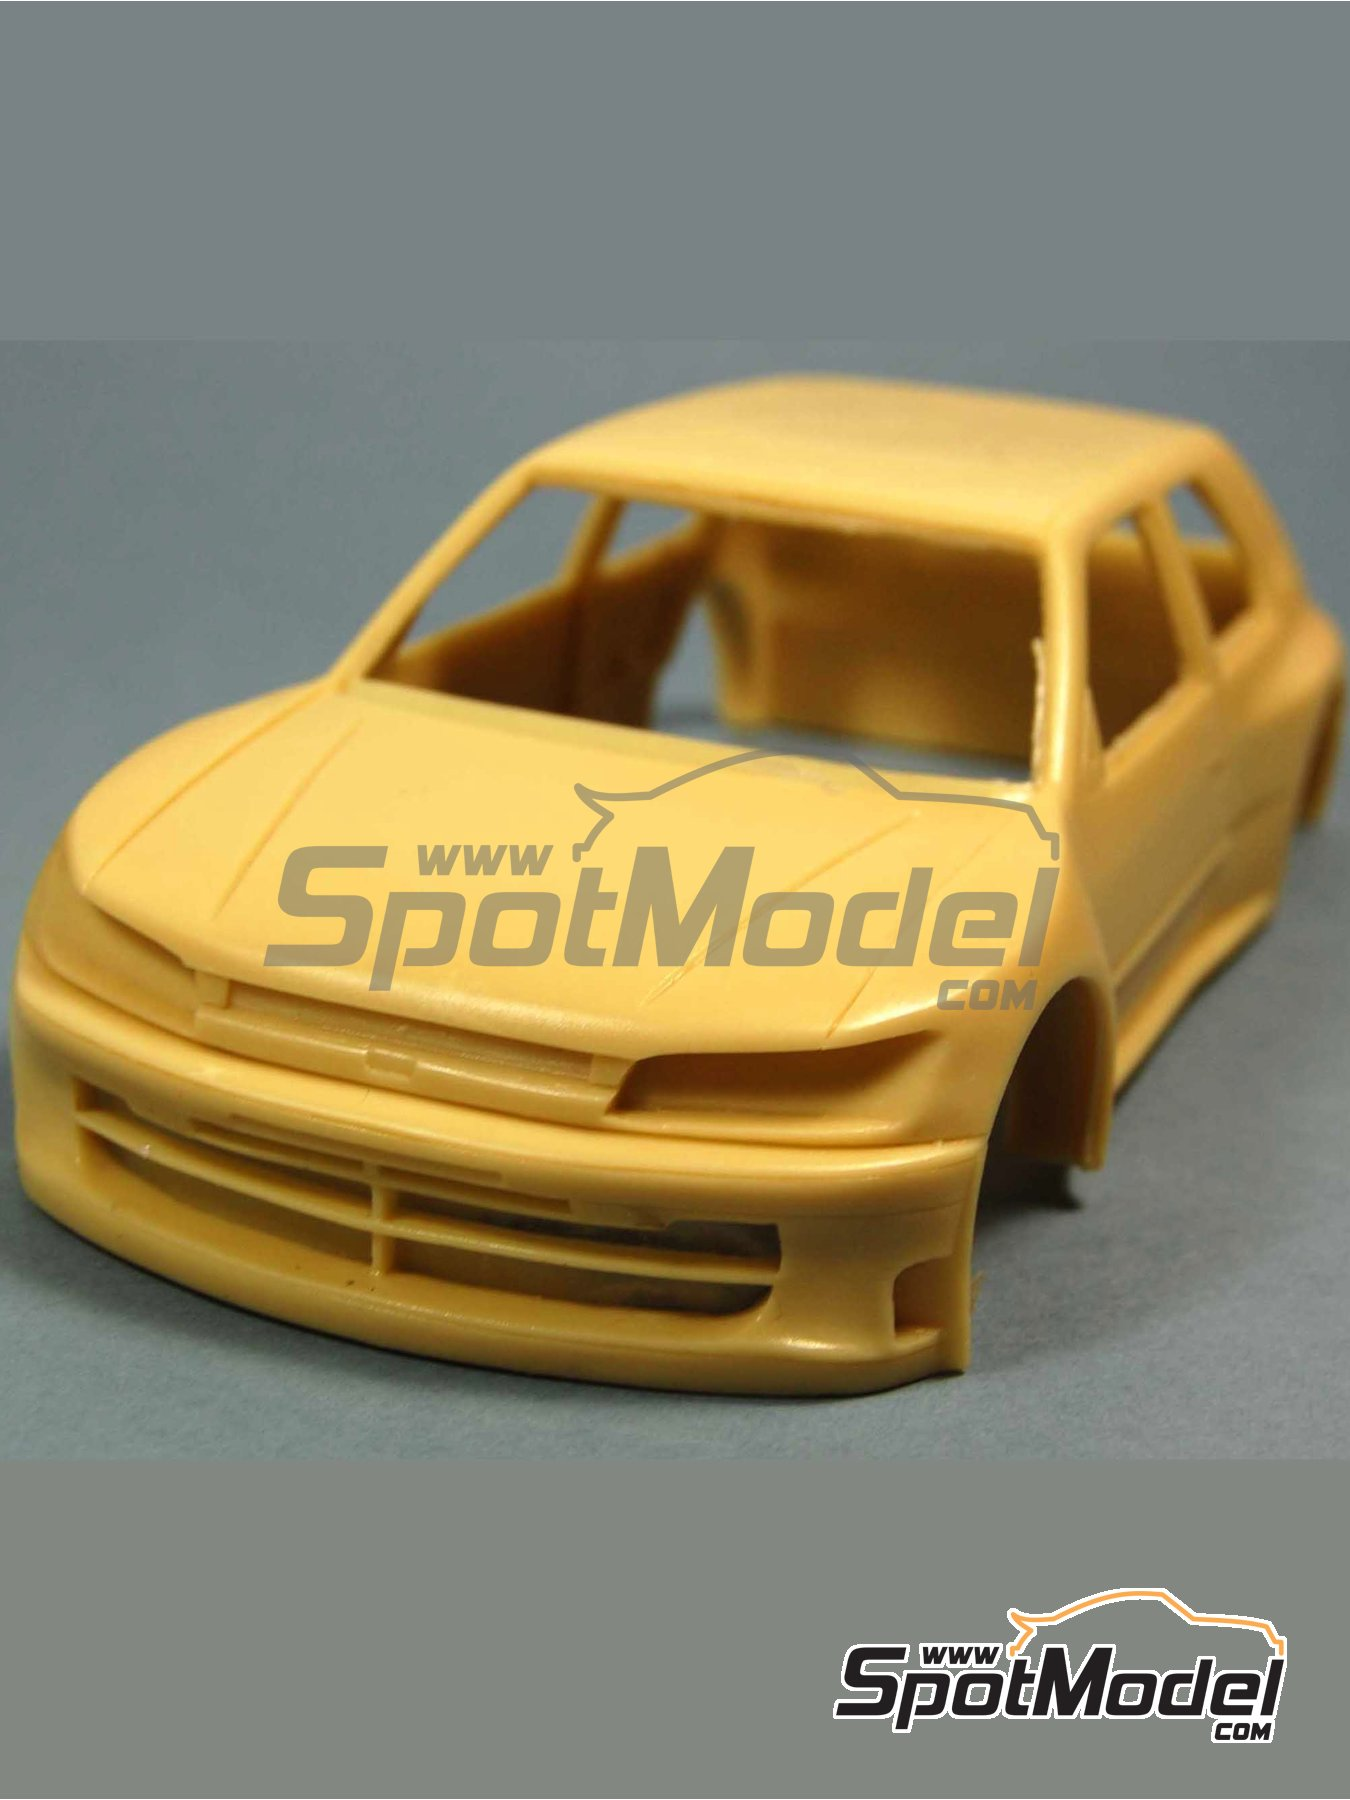 Peugeot 306 Maxi Evo 2 | Bodywork in 1/24 scale manufactured by Renaissance Models (ref. CTR2404-BODY) image